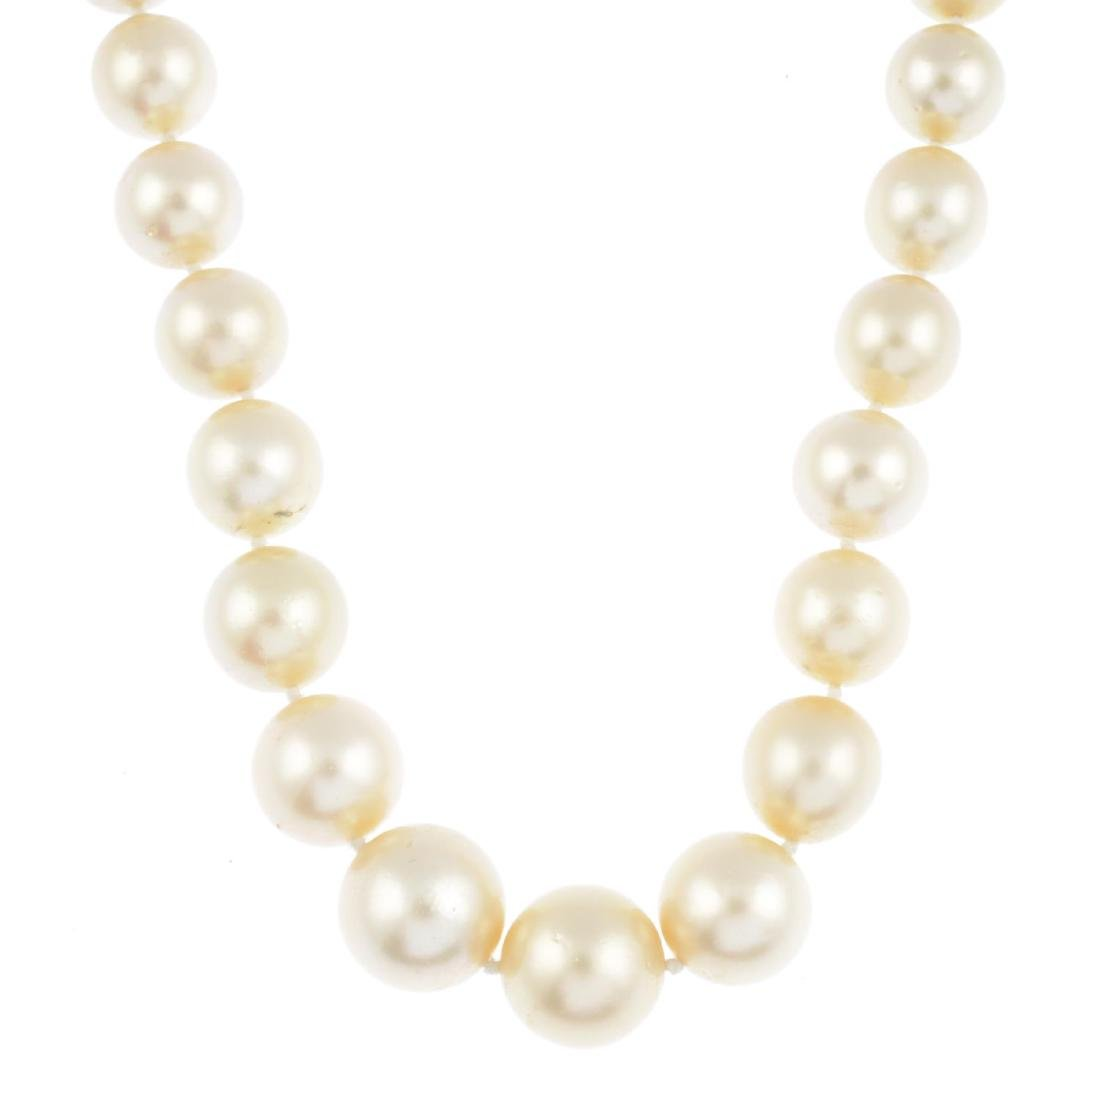 (206296) A cultured pearl single-strand necklace.